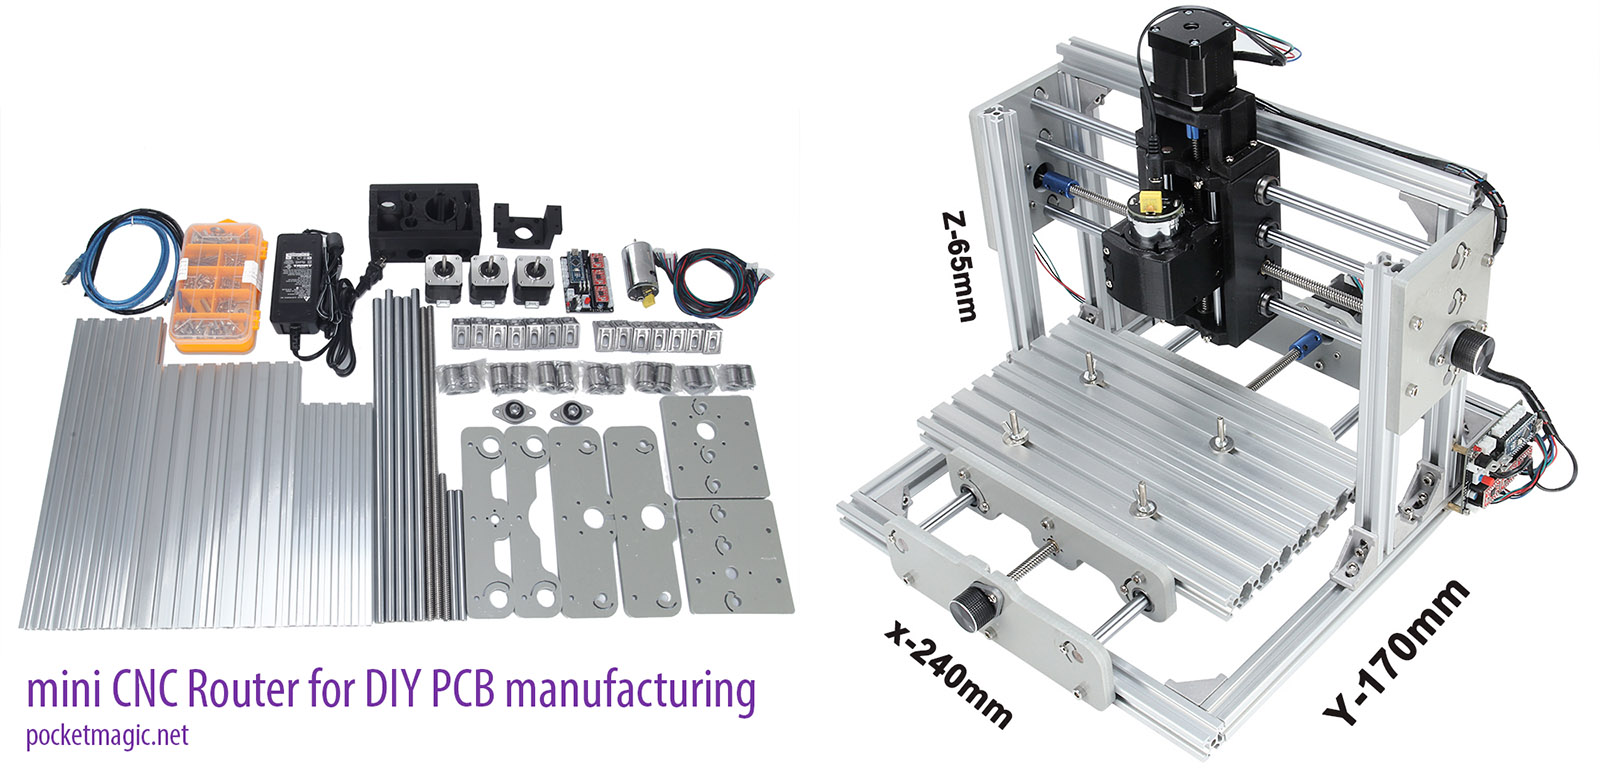 Cnc Router For Diy Pcb Manufacturing Pocketmagic Mill The Construction Was Easy After All What Can You Expect From A Cartesian Frame And Few Wires